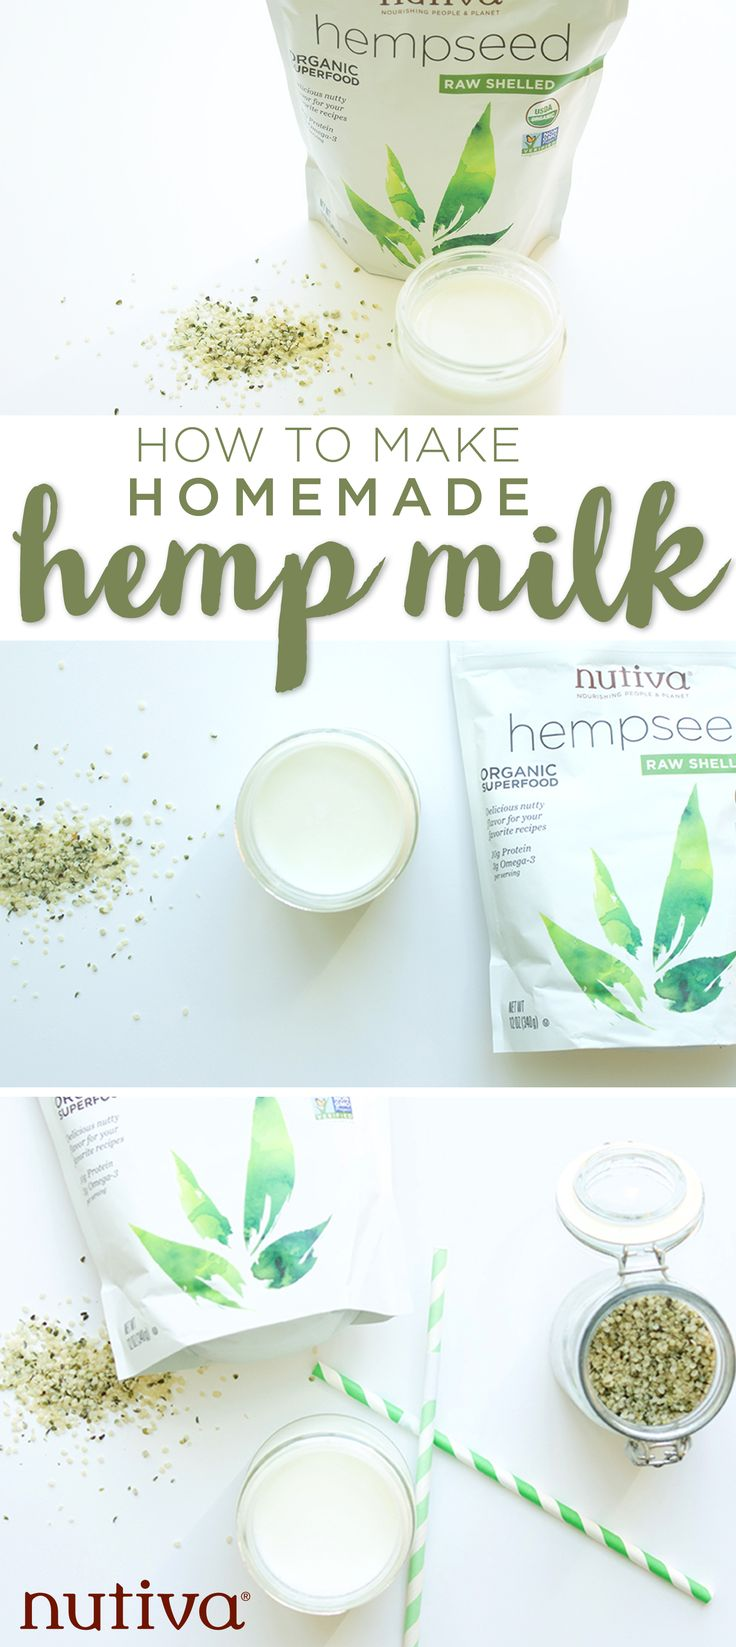 • 1/4 cup Nutiva hempseeds • 1 cup water • 1 tsp. vanilla extract (optional)